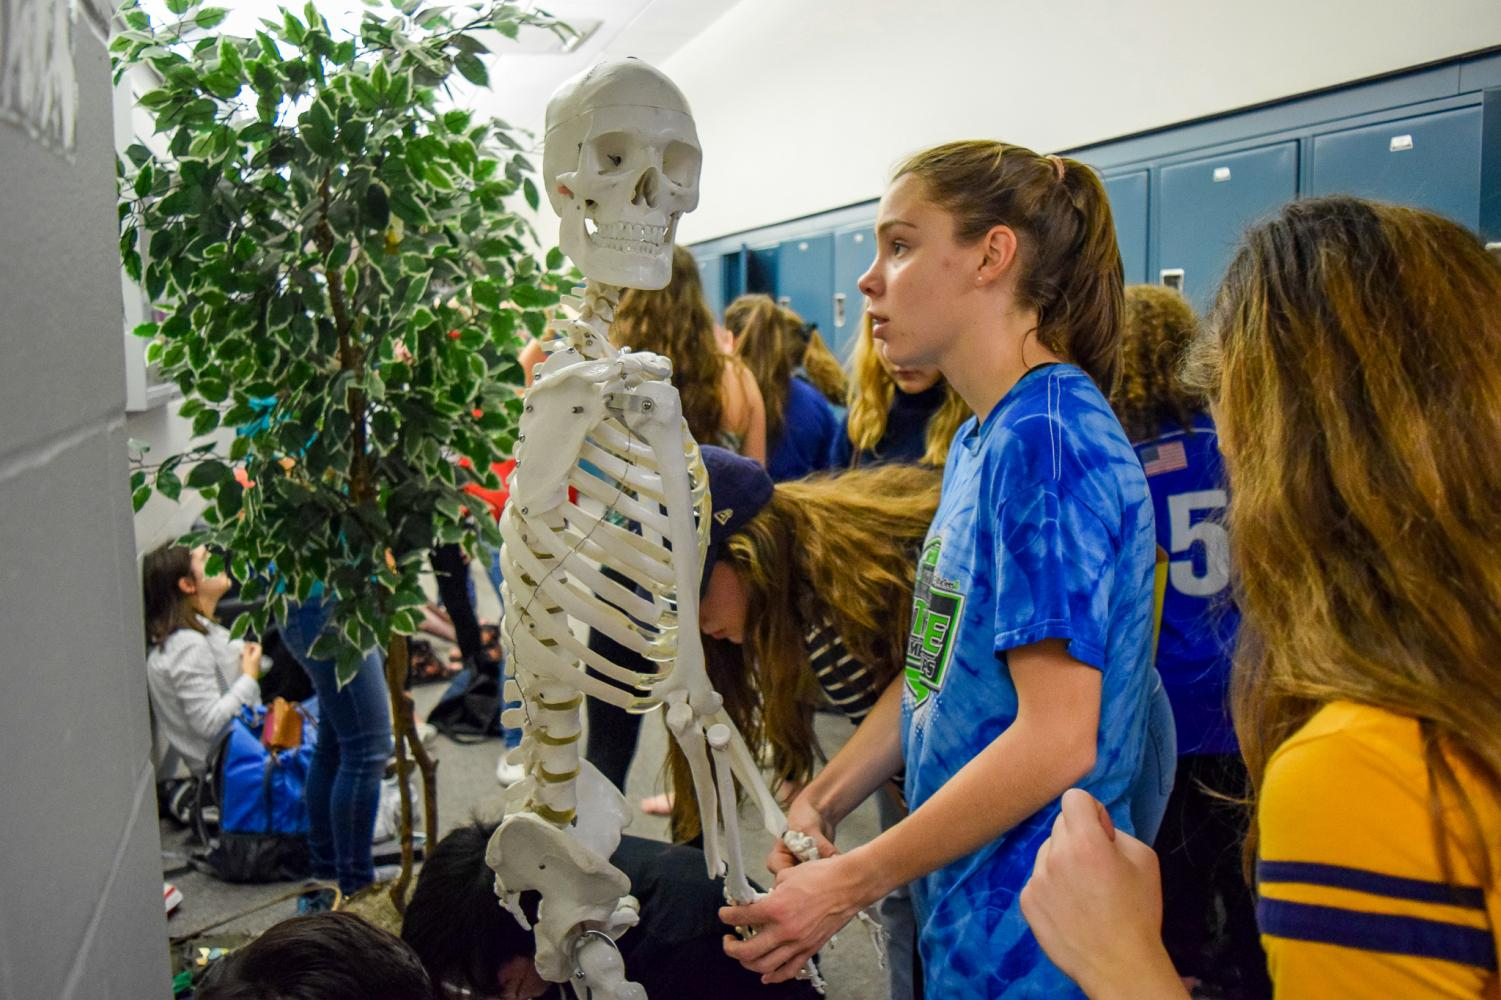 The+SGA+assigned+items+with+either+one%2C+three%2C+five+or+40+points.+Senior+and+Class+of+2019+council+member+Erica+Sammarco+of+Colts+Neck+looks+at+the+biology+skeleton%2C+a+five+point+item+in+the+scavenger+hunt.